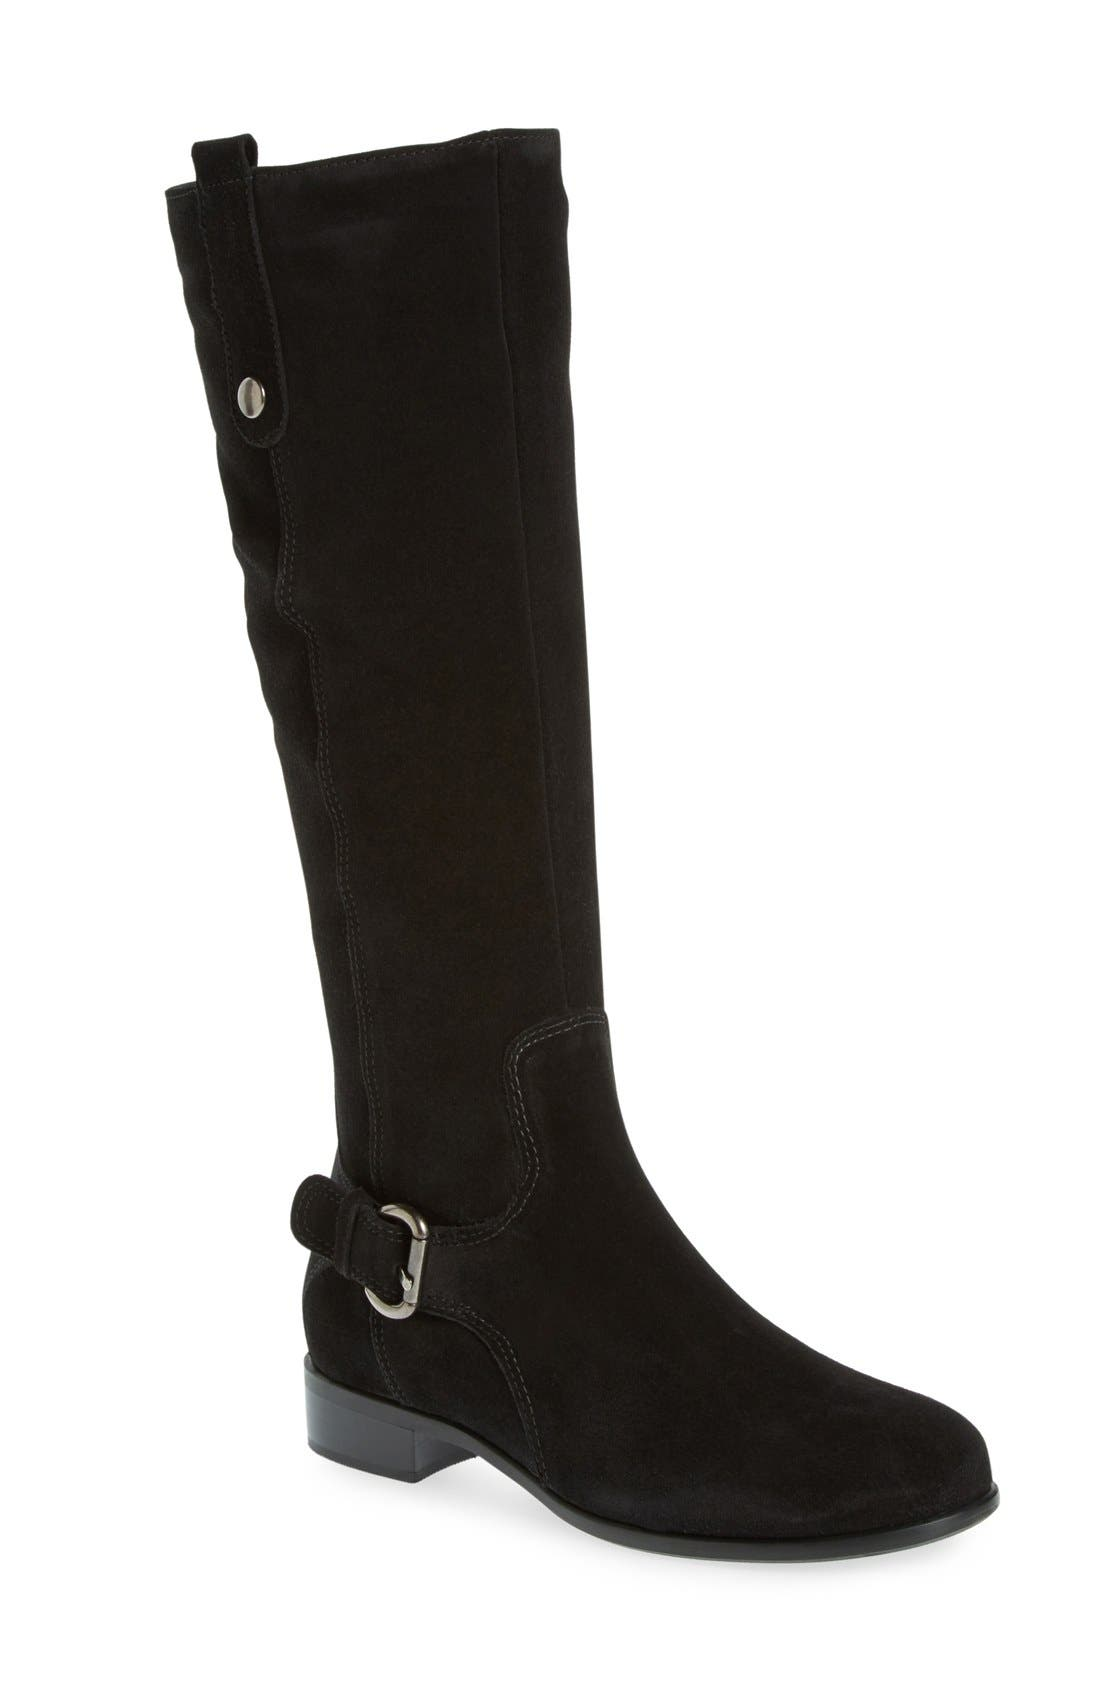 Alternate Image 1 Selected - La Canadienne 'Stefanie' Waterproof Boot (Women)